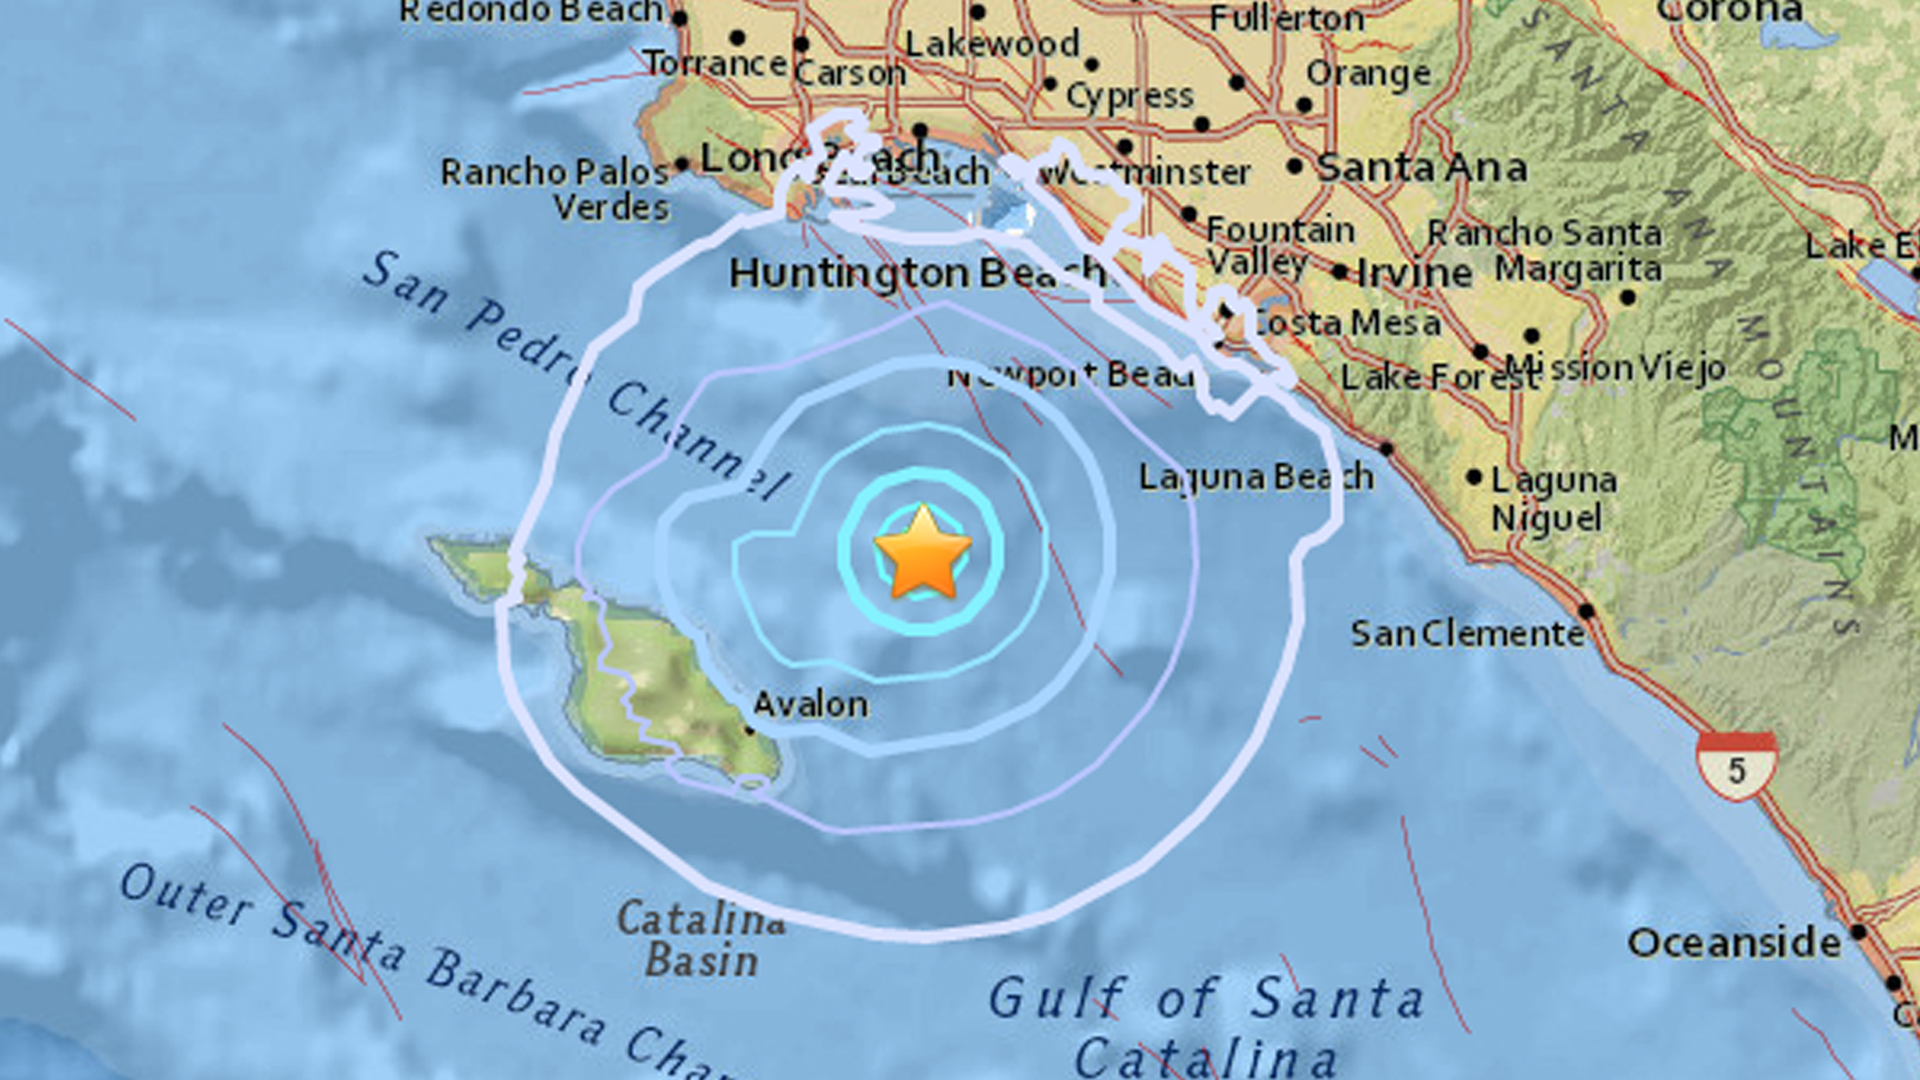 A 3.5-earthquake struck off Catalina Island on Oct. 26, 2017. (Credit: USGS)